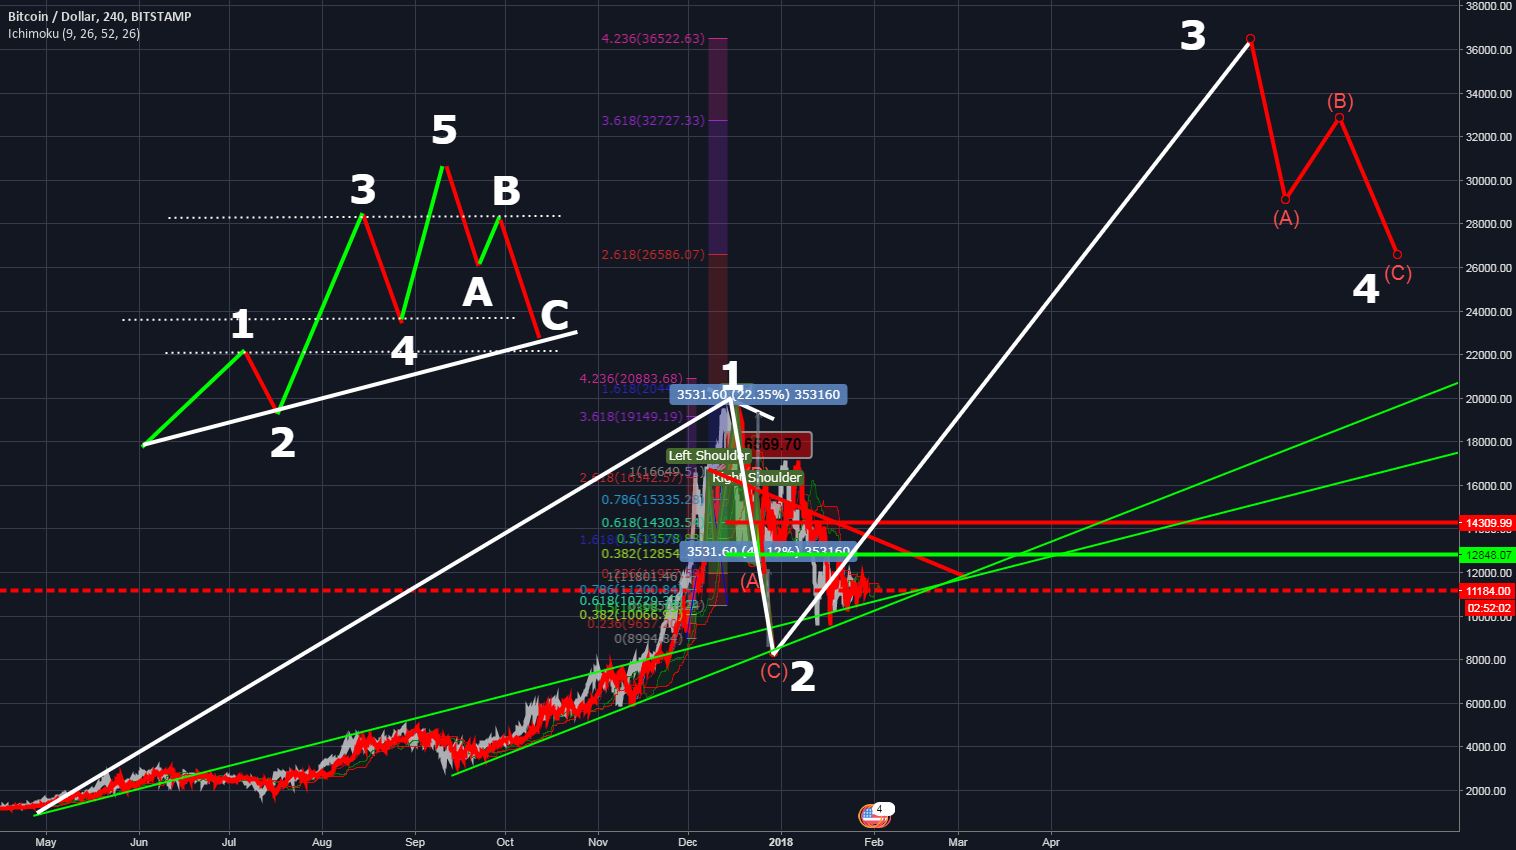 BTC wave 3 started ??